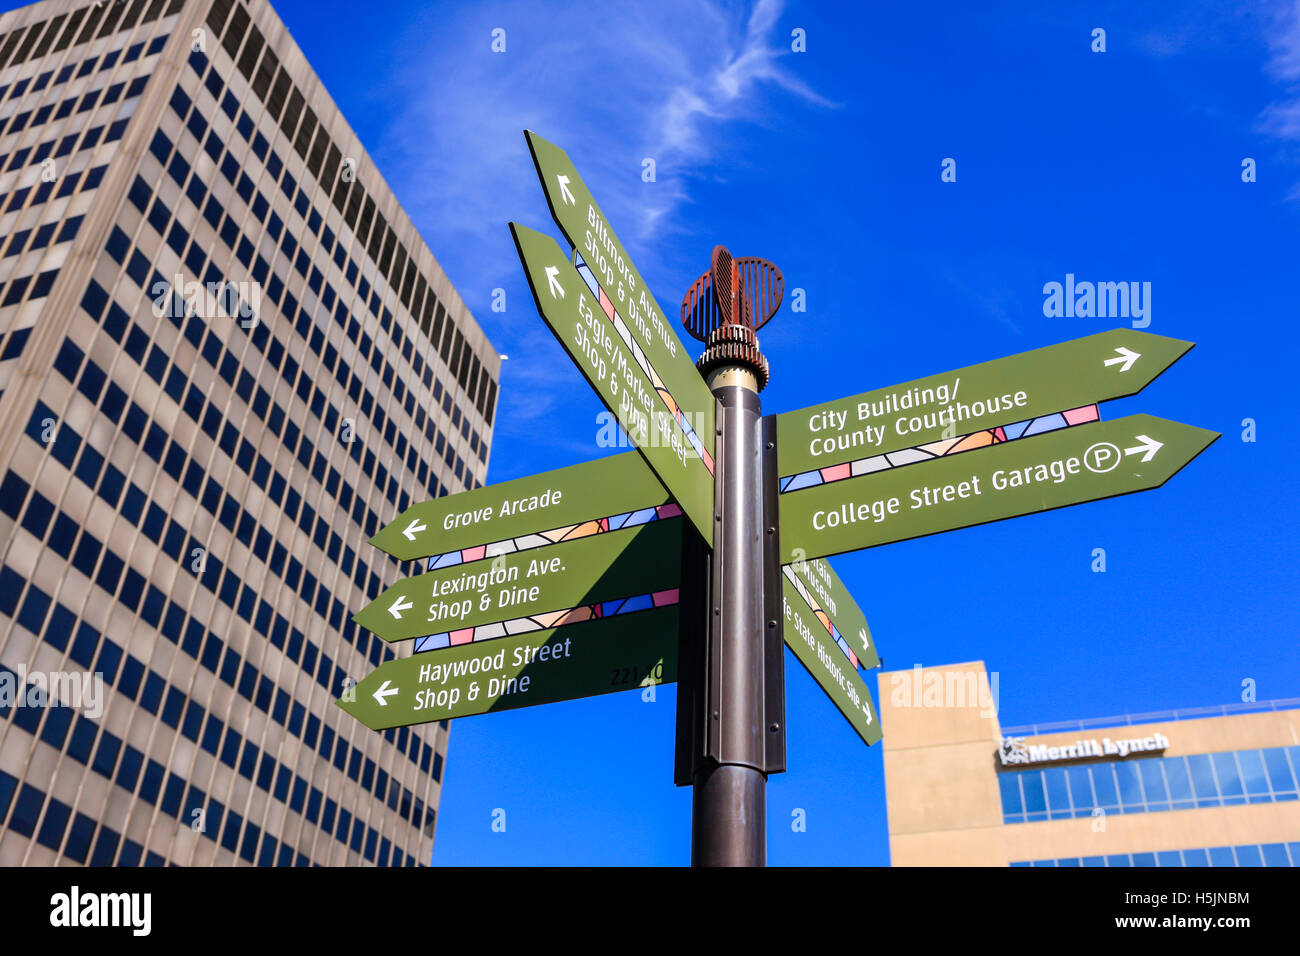 Multiple downtown destinations within the city of Asheville NC - Stock Image